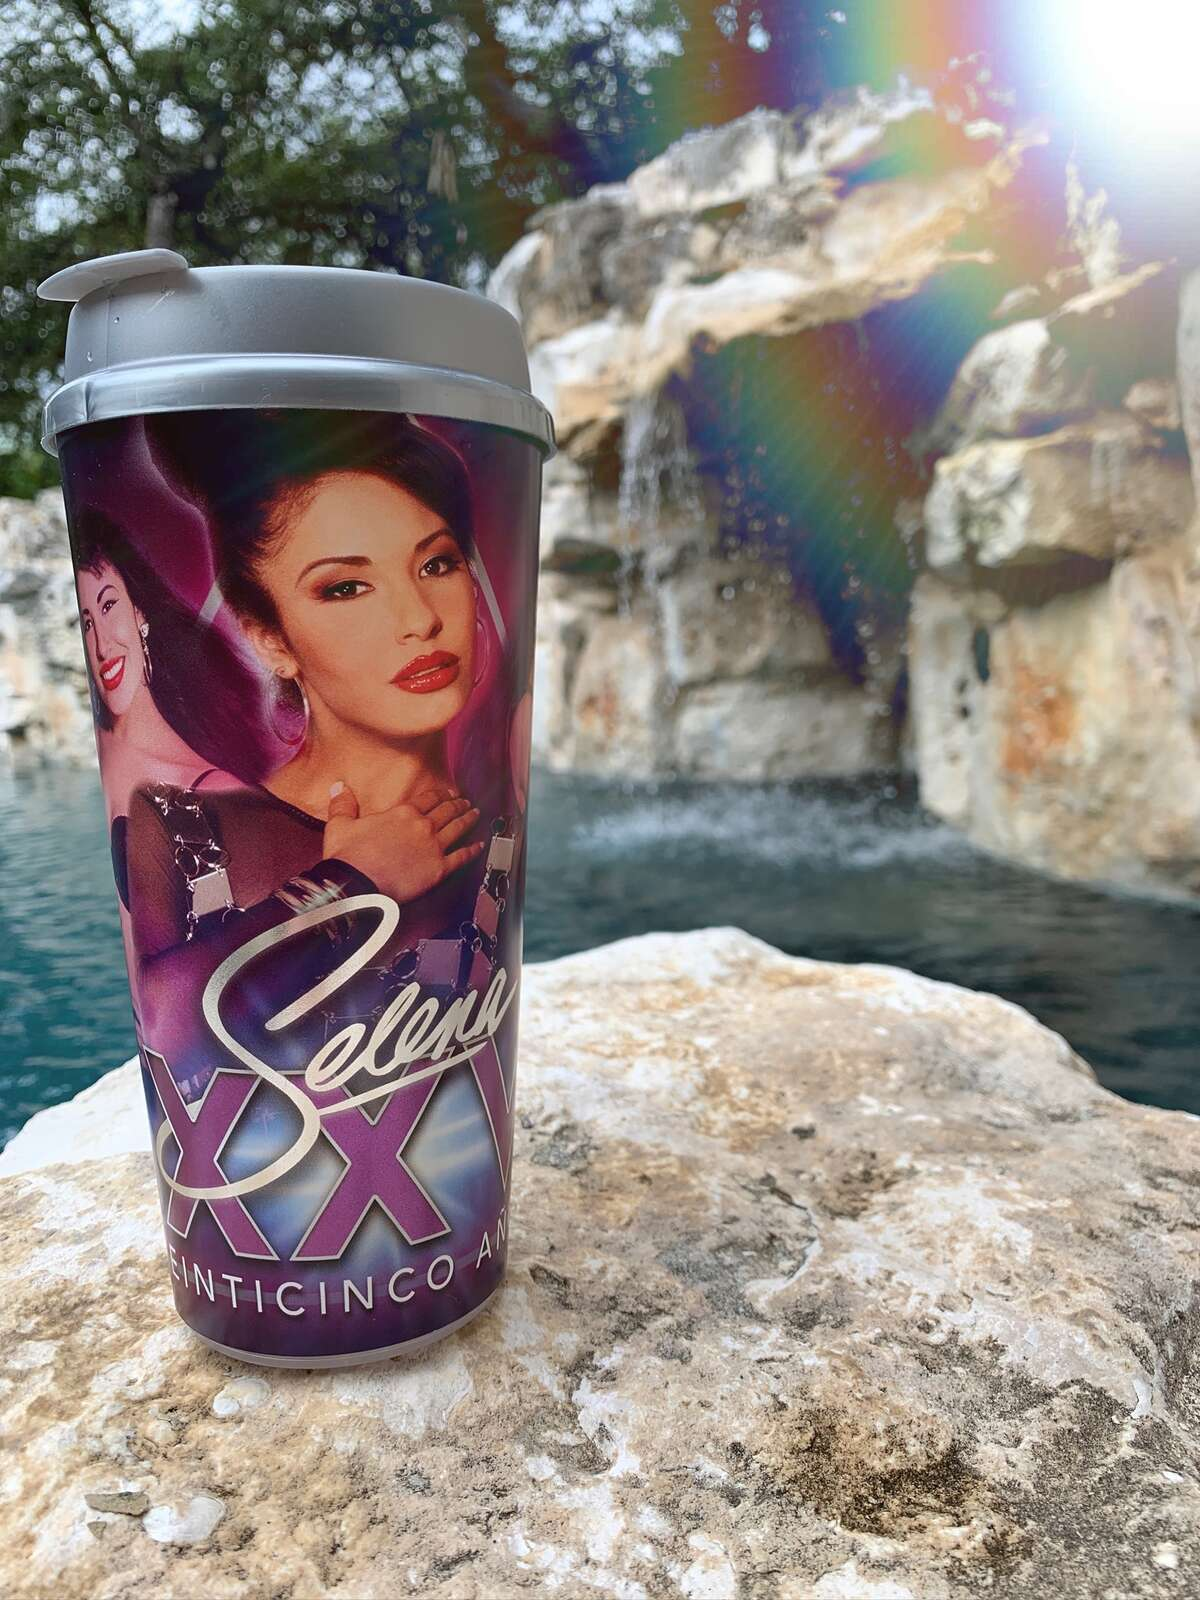 The Selena 25 cups will be available at Stripes Stores.